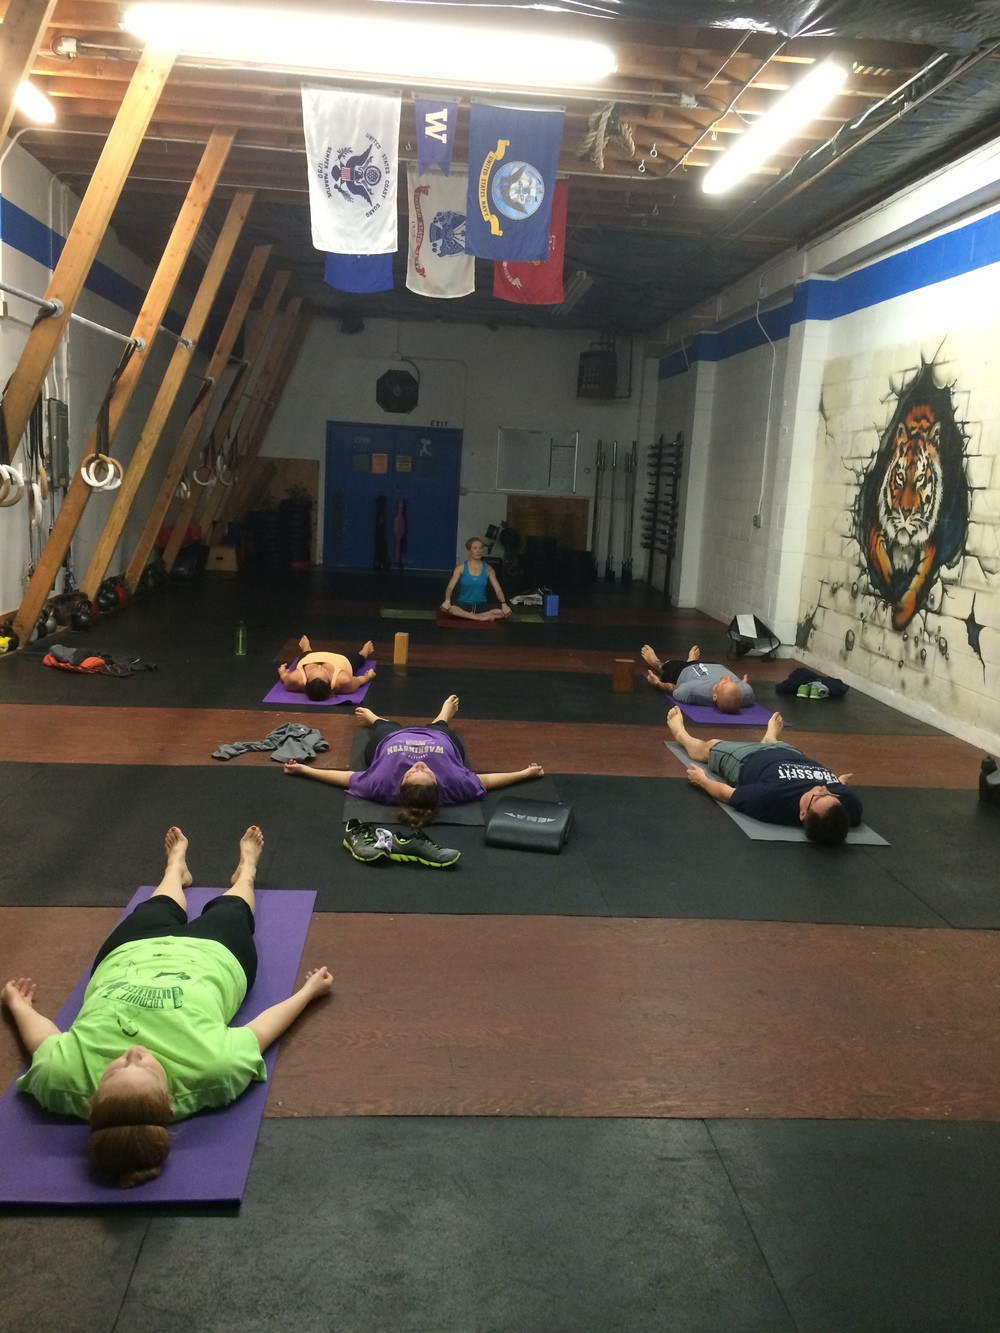 Amandas yoga class is committed and looking good